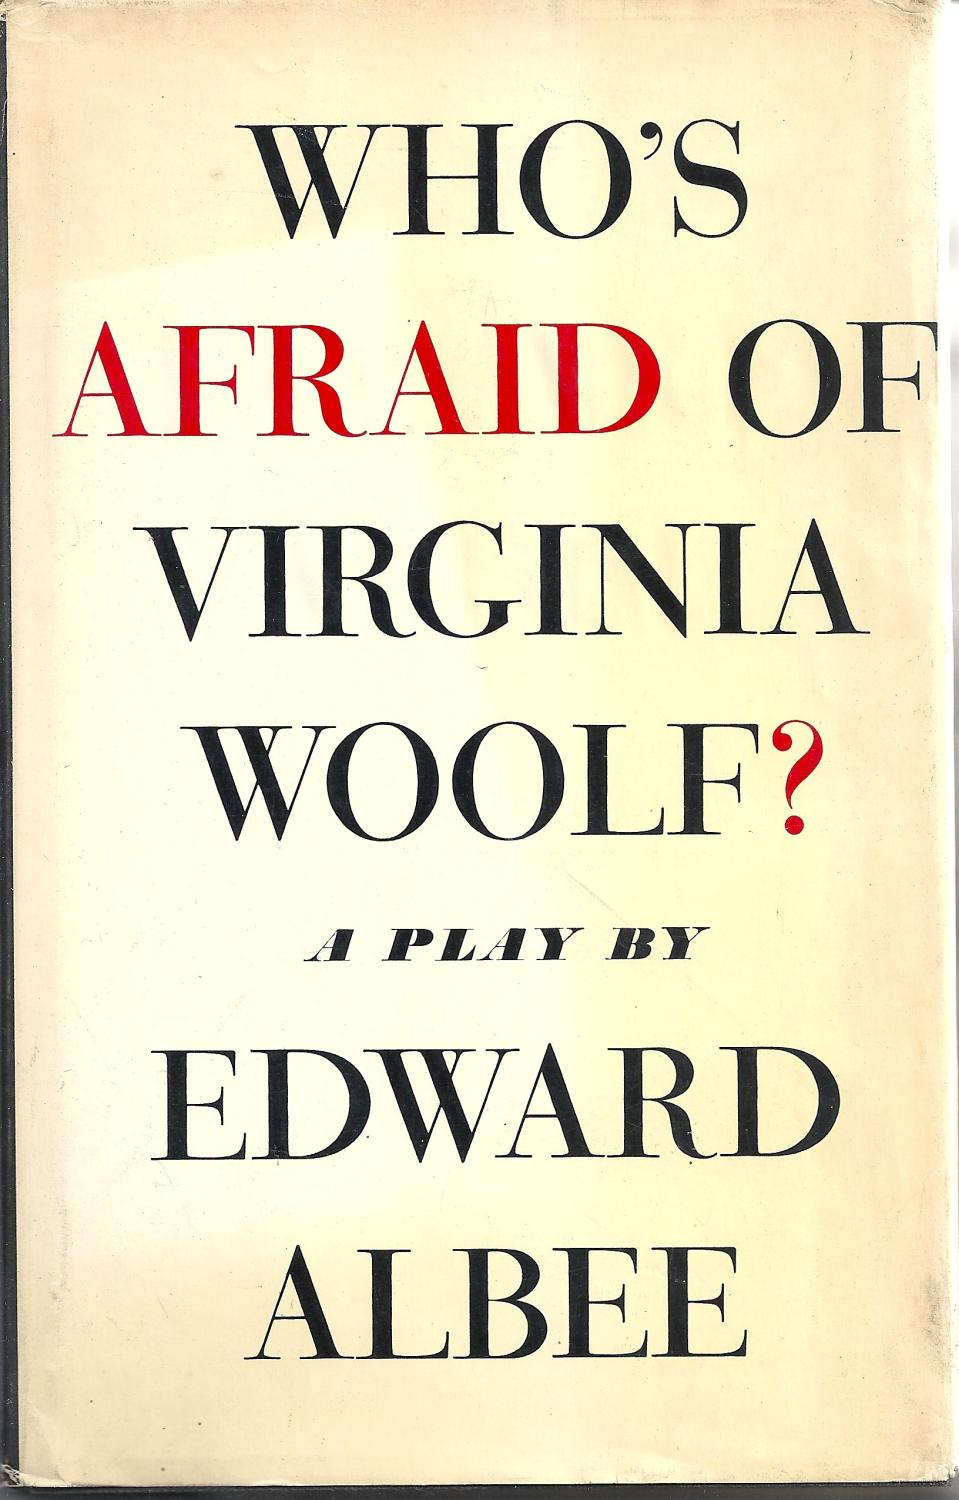 Image result for edward albee's who's afraid of virginia woolf logo